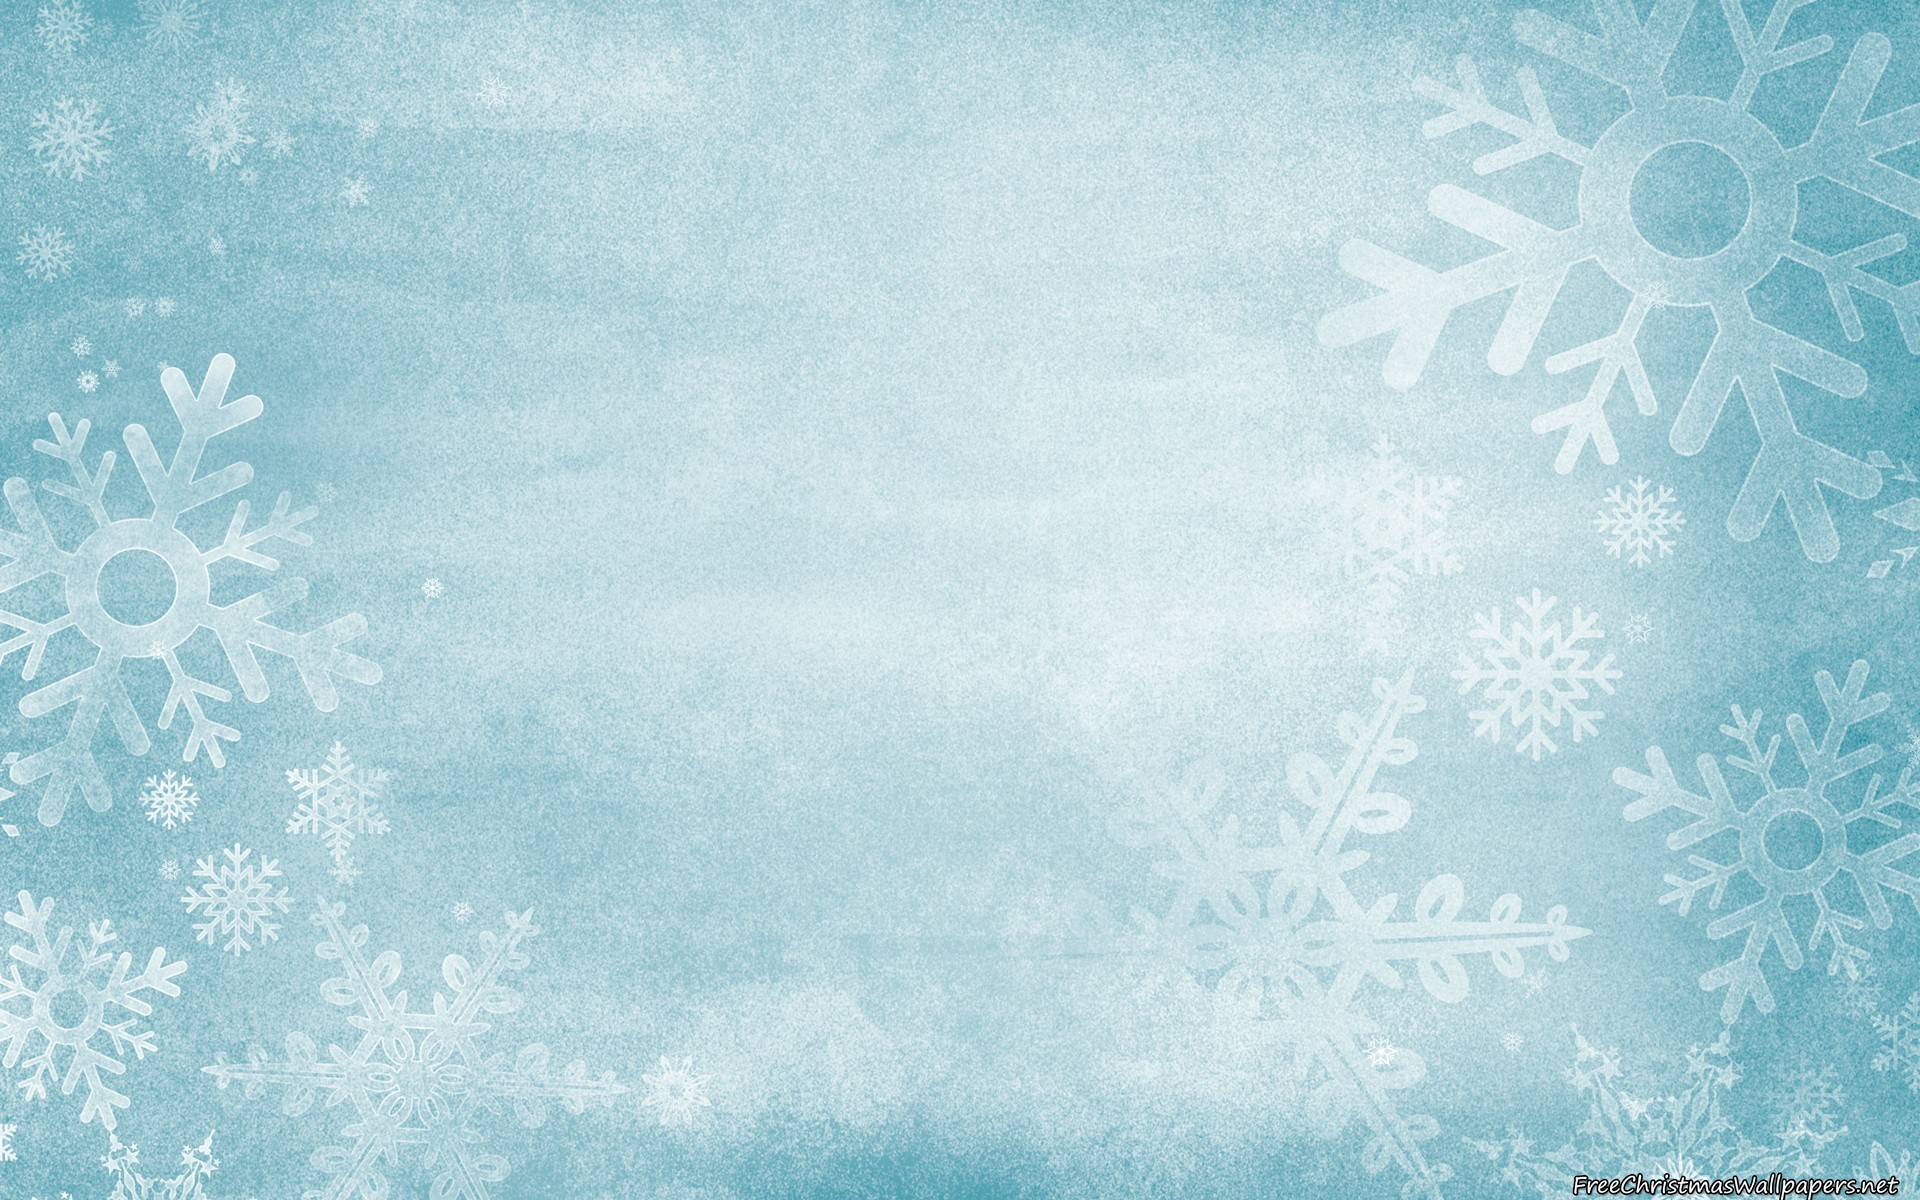 frozen christmas background - wallpaper - freechristmaswallpapers